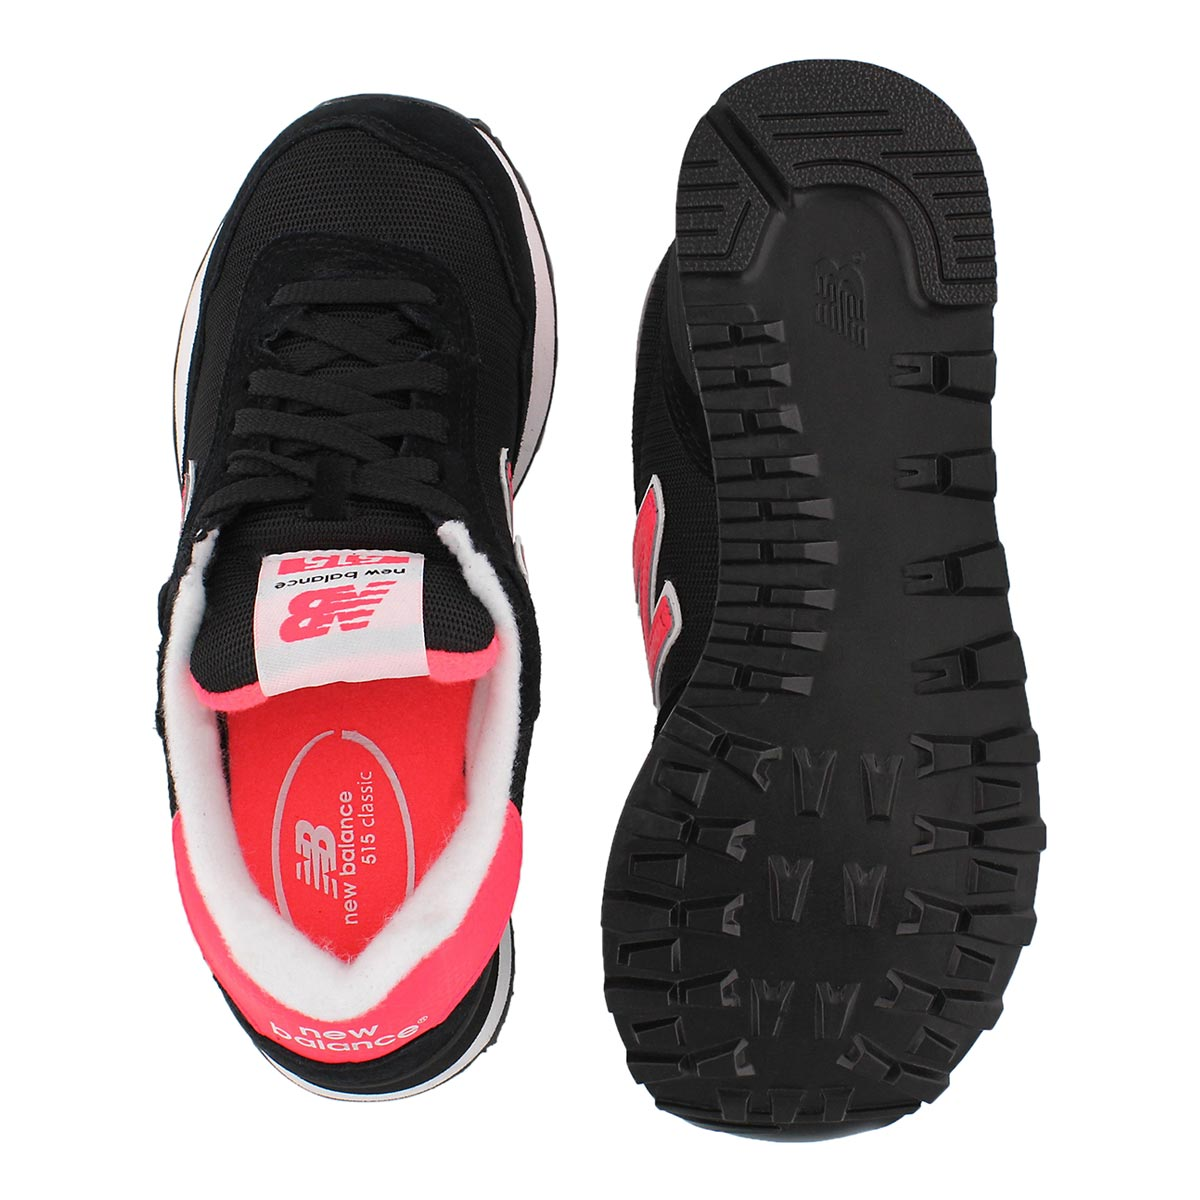 Lds 515 black/cherry lace up sneaker